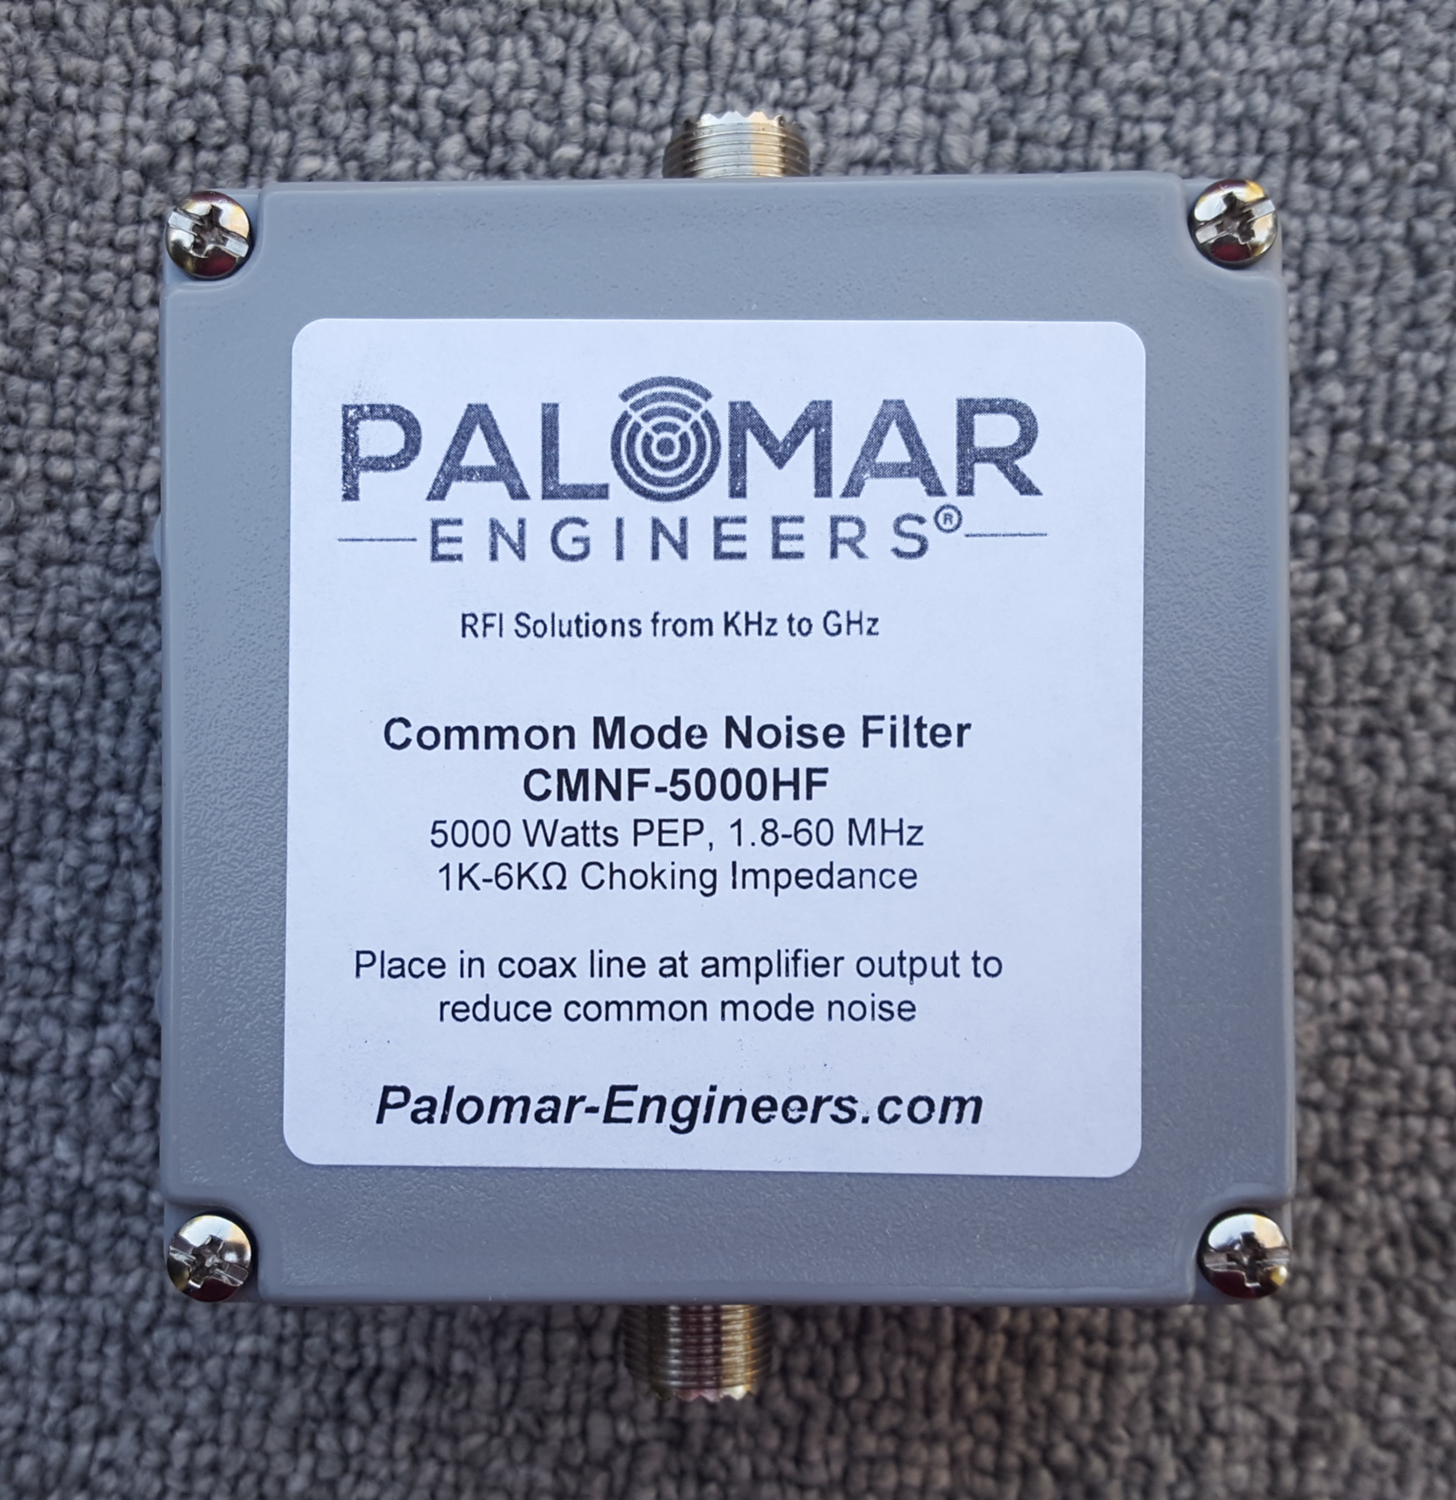 816294789 - Common Mode Noise Filter - Coax